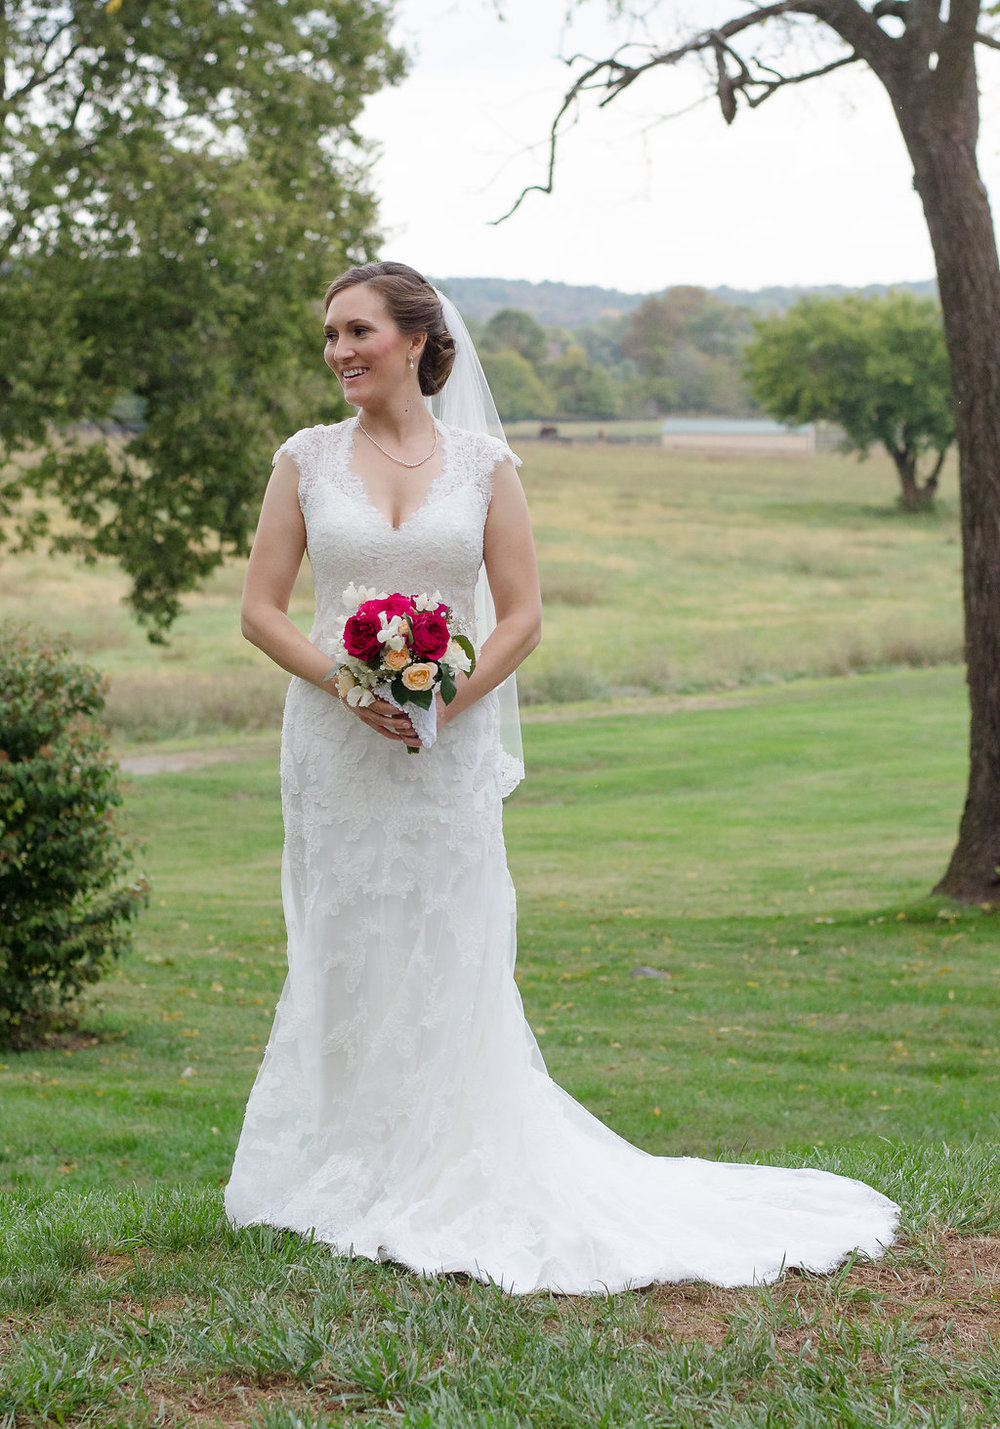 Whitehall Estate and Winery Wedding farm bride Photo